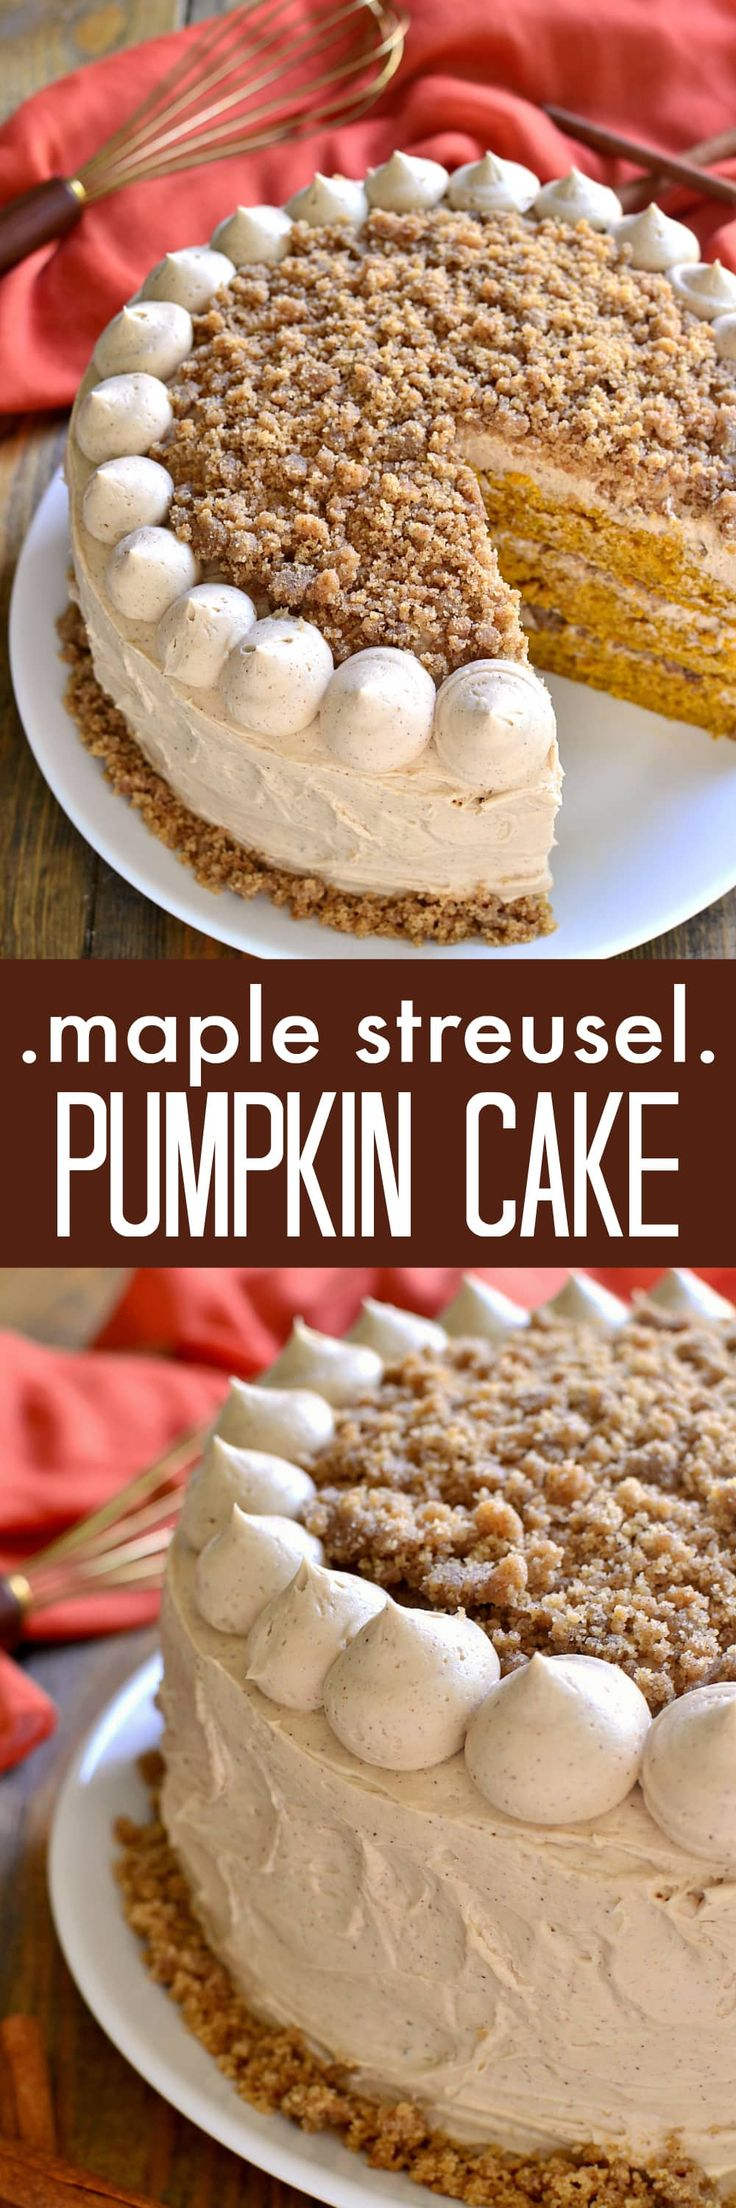 Moist, delicious pumpkin cake, layered with maple cinnamon buttercream and crunchy streusel. Perfect for Thanksgiving or any fall celebration!